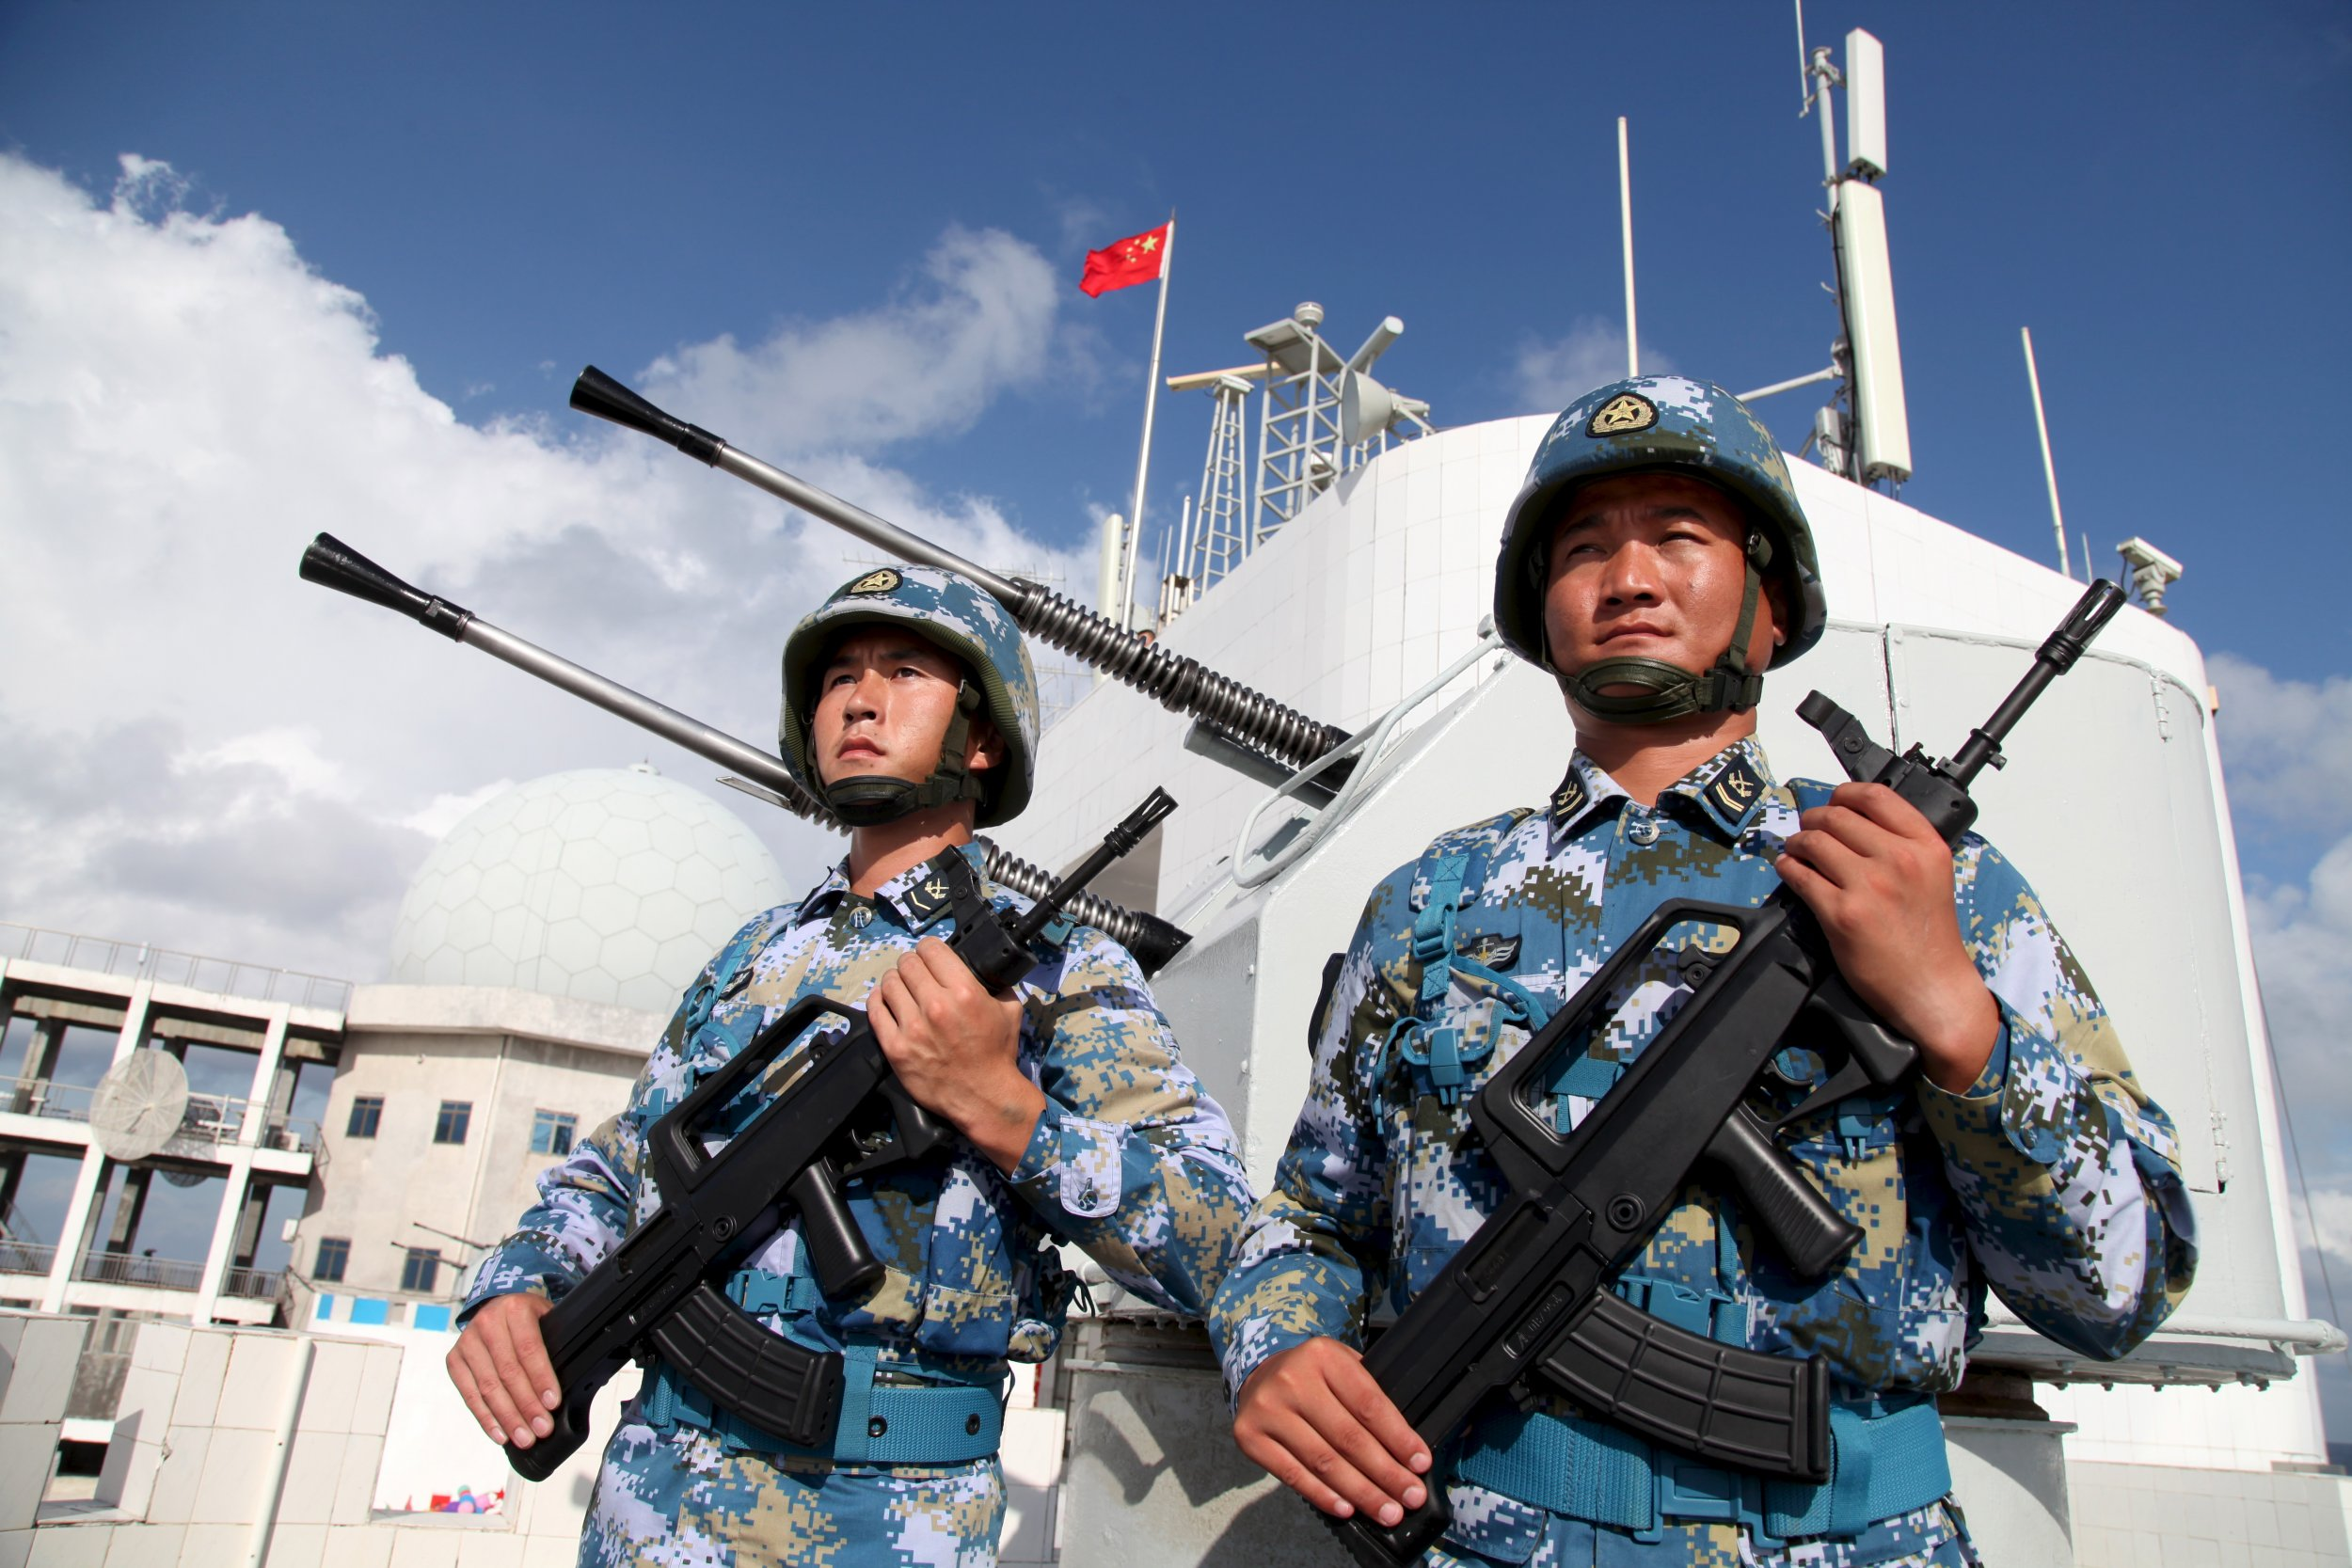 https://i1.wp.com/s.newsweek.com/sites/www.newsweek.com/files/styles/full/public/2016/03/02/philippines-says-china-blocking-access-south-china-sea-atoll..jpg